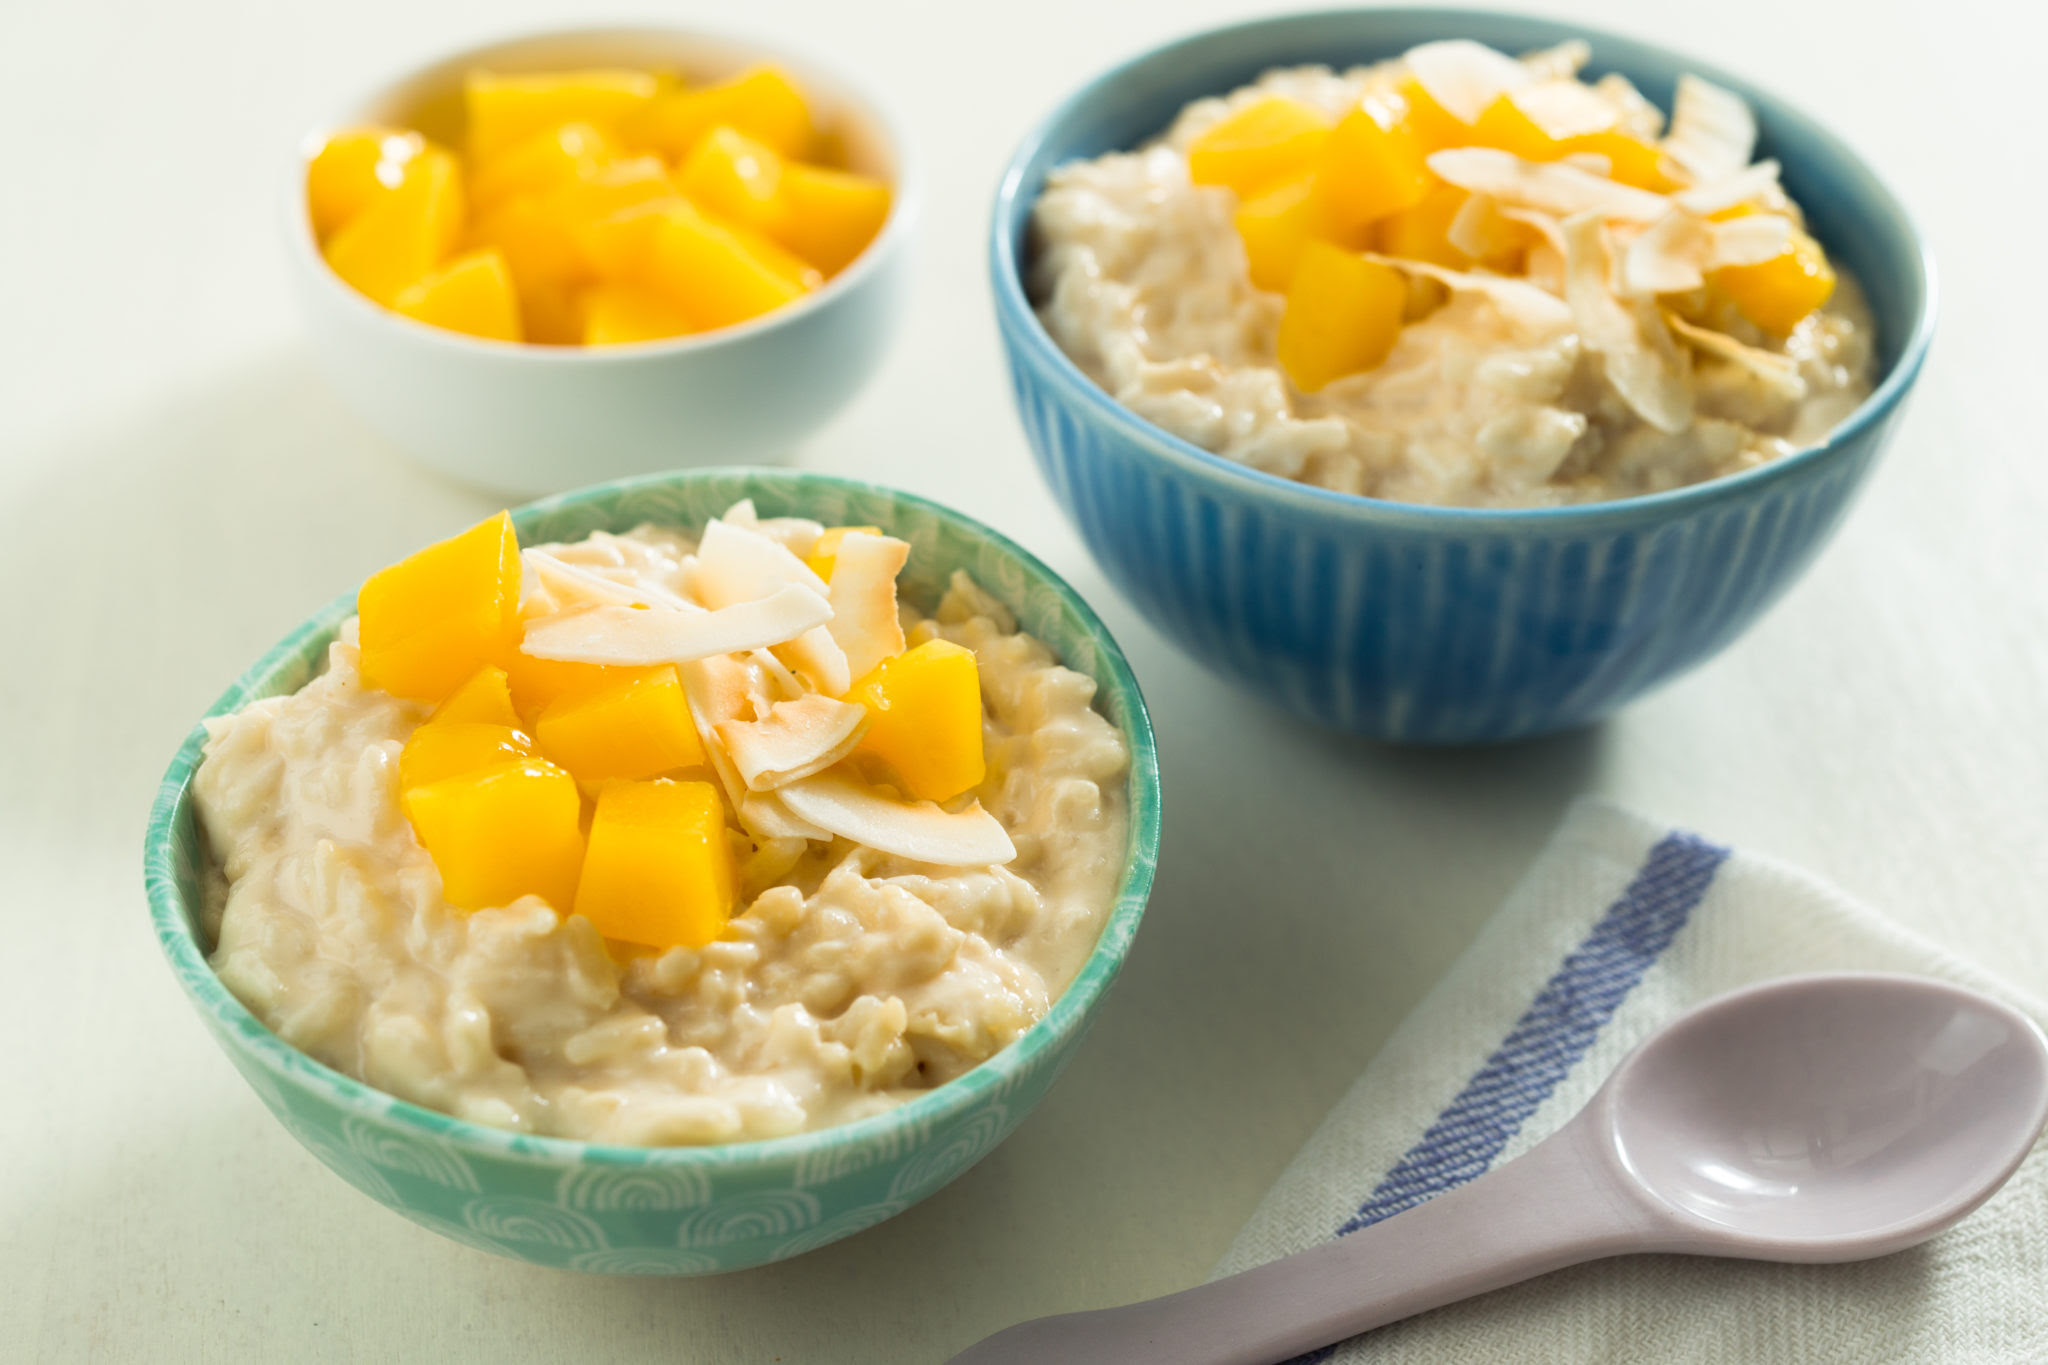 Slow Cooker Coconut Rice Pudding with Mango | Cans Get You ...